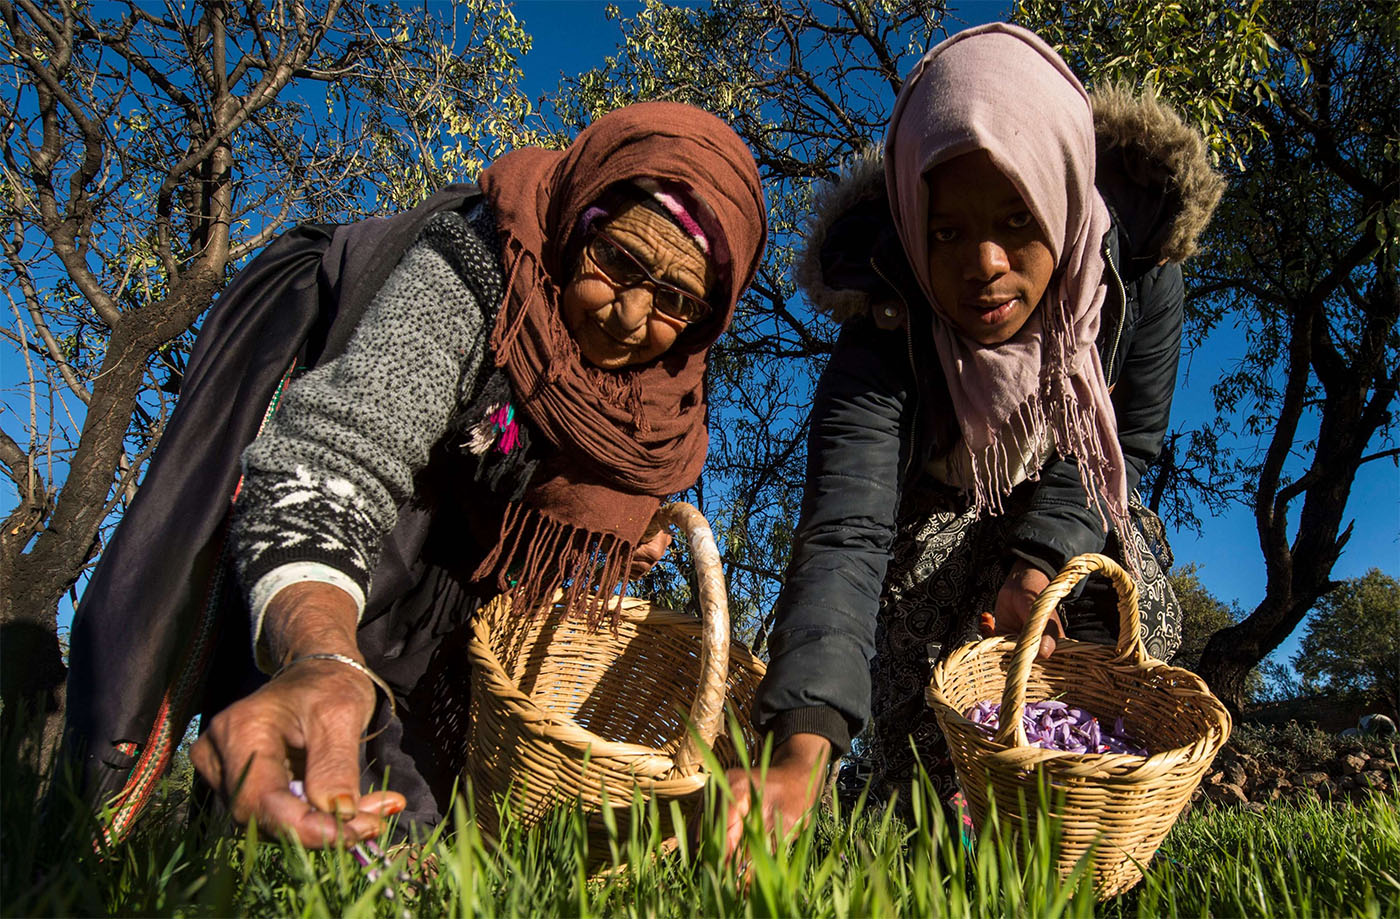 Female labourers pick saffron flowers in Taliouine